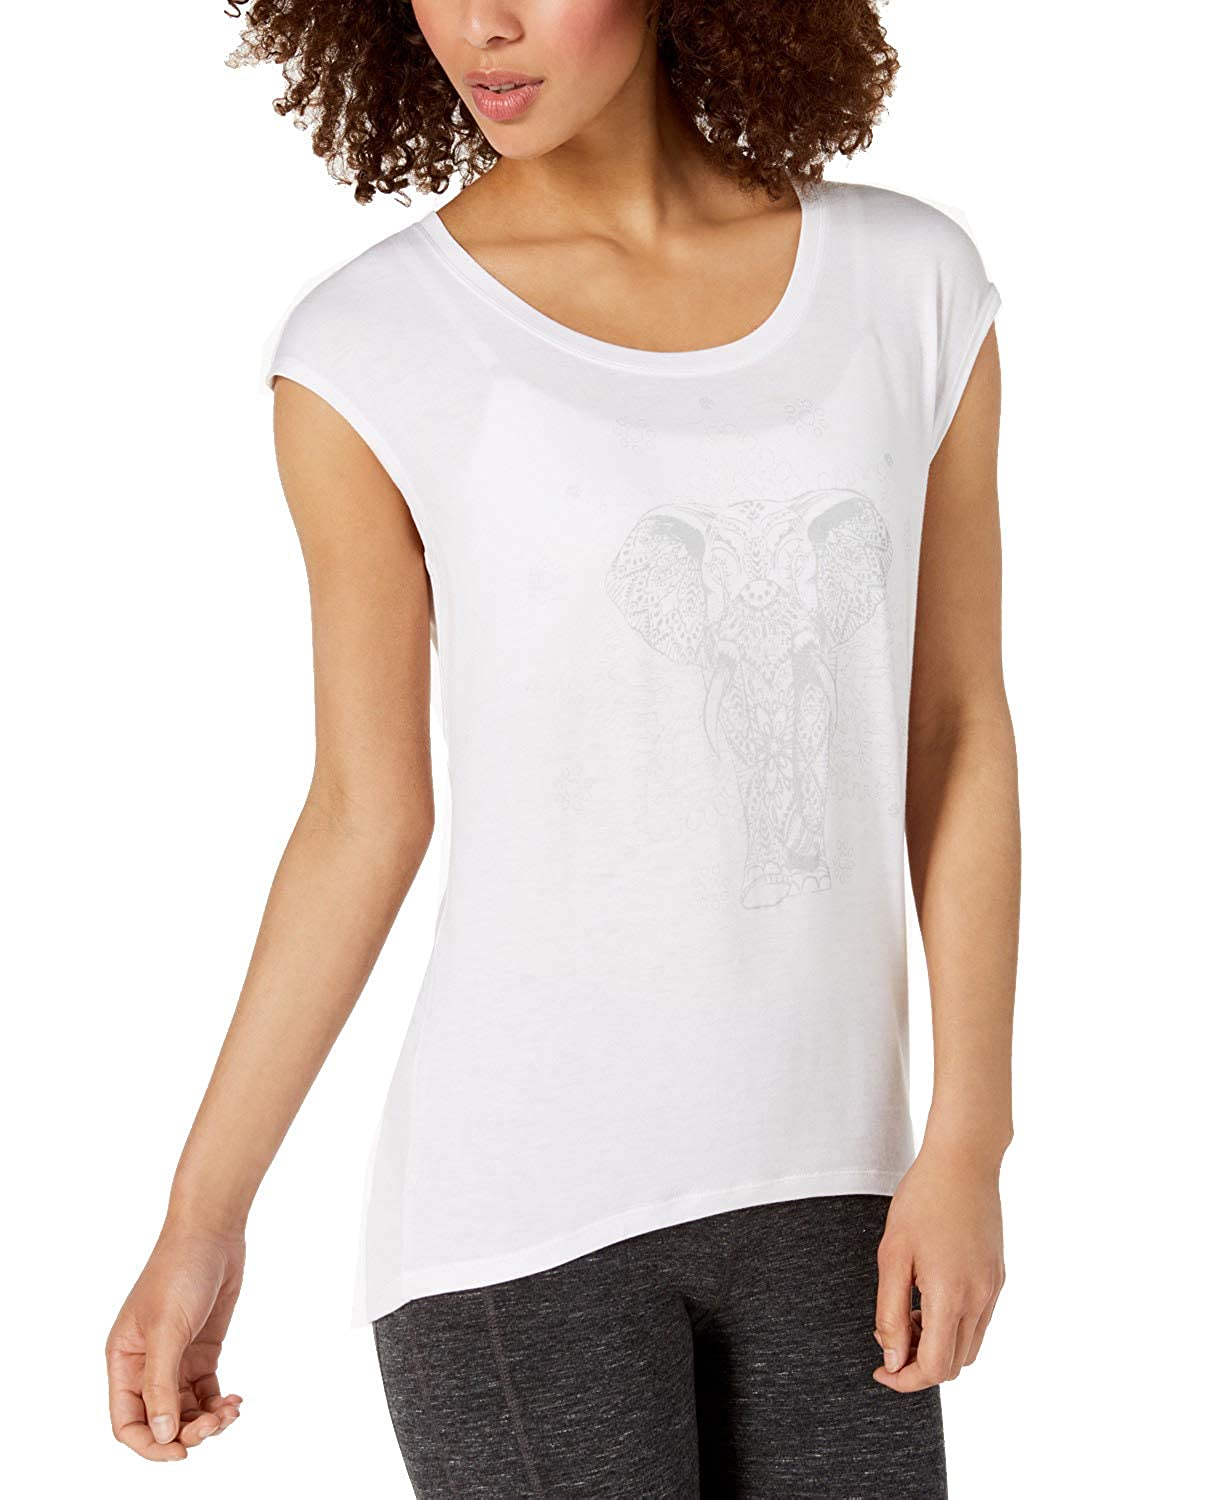 Gaiam Womens Elephant Yoga Workout T-Shirt White S at Amazon ...